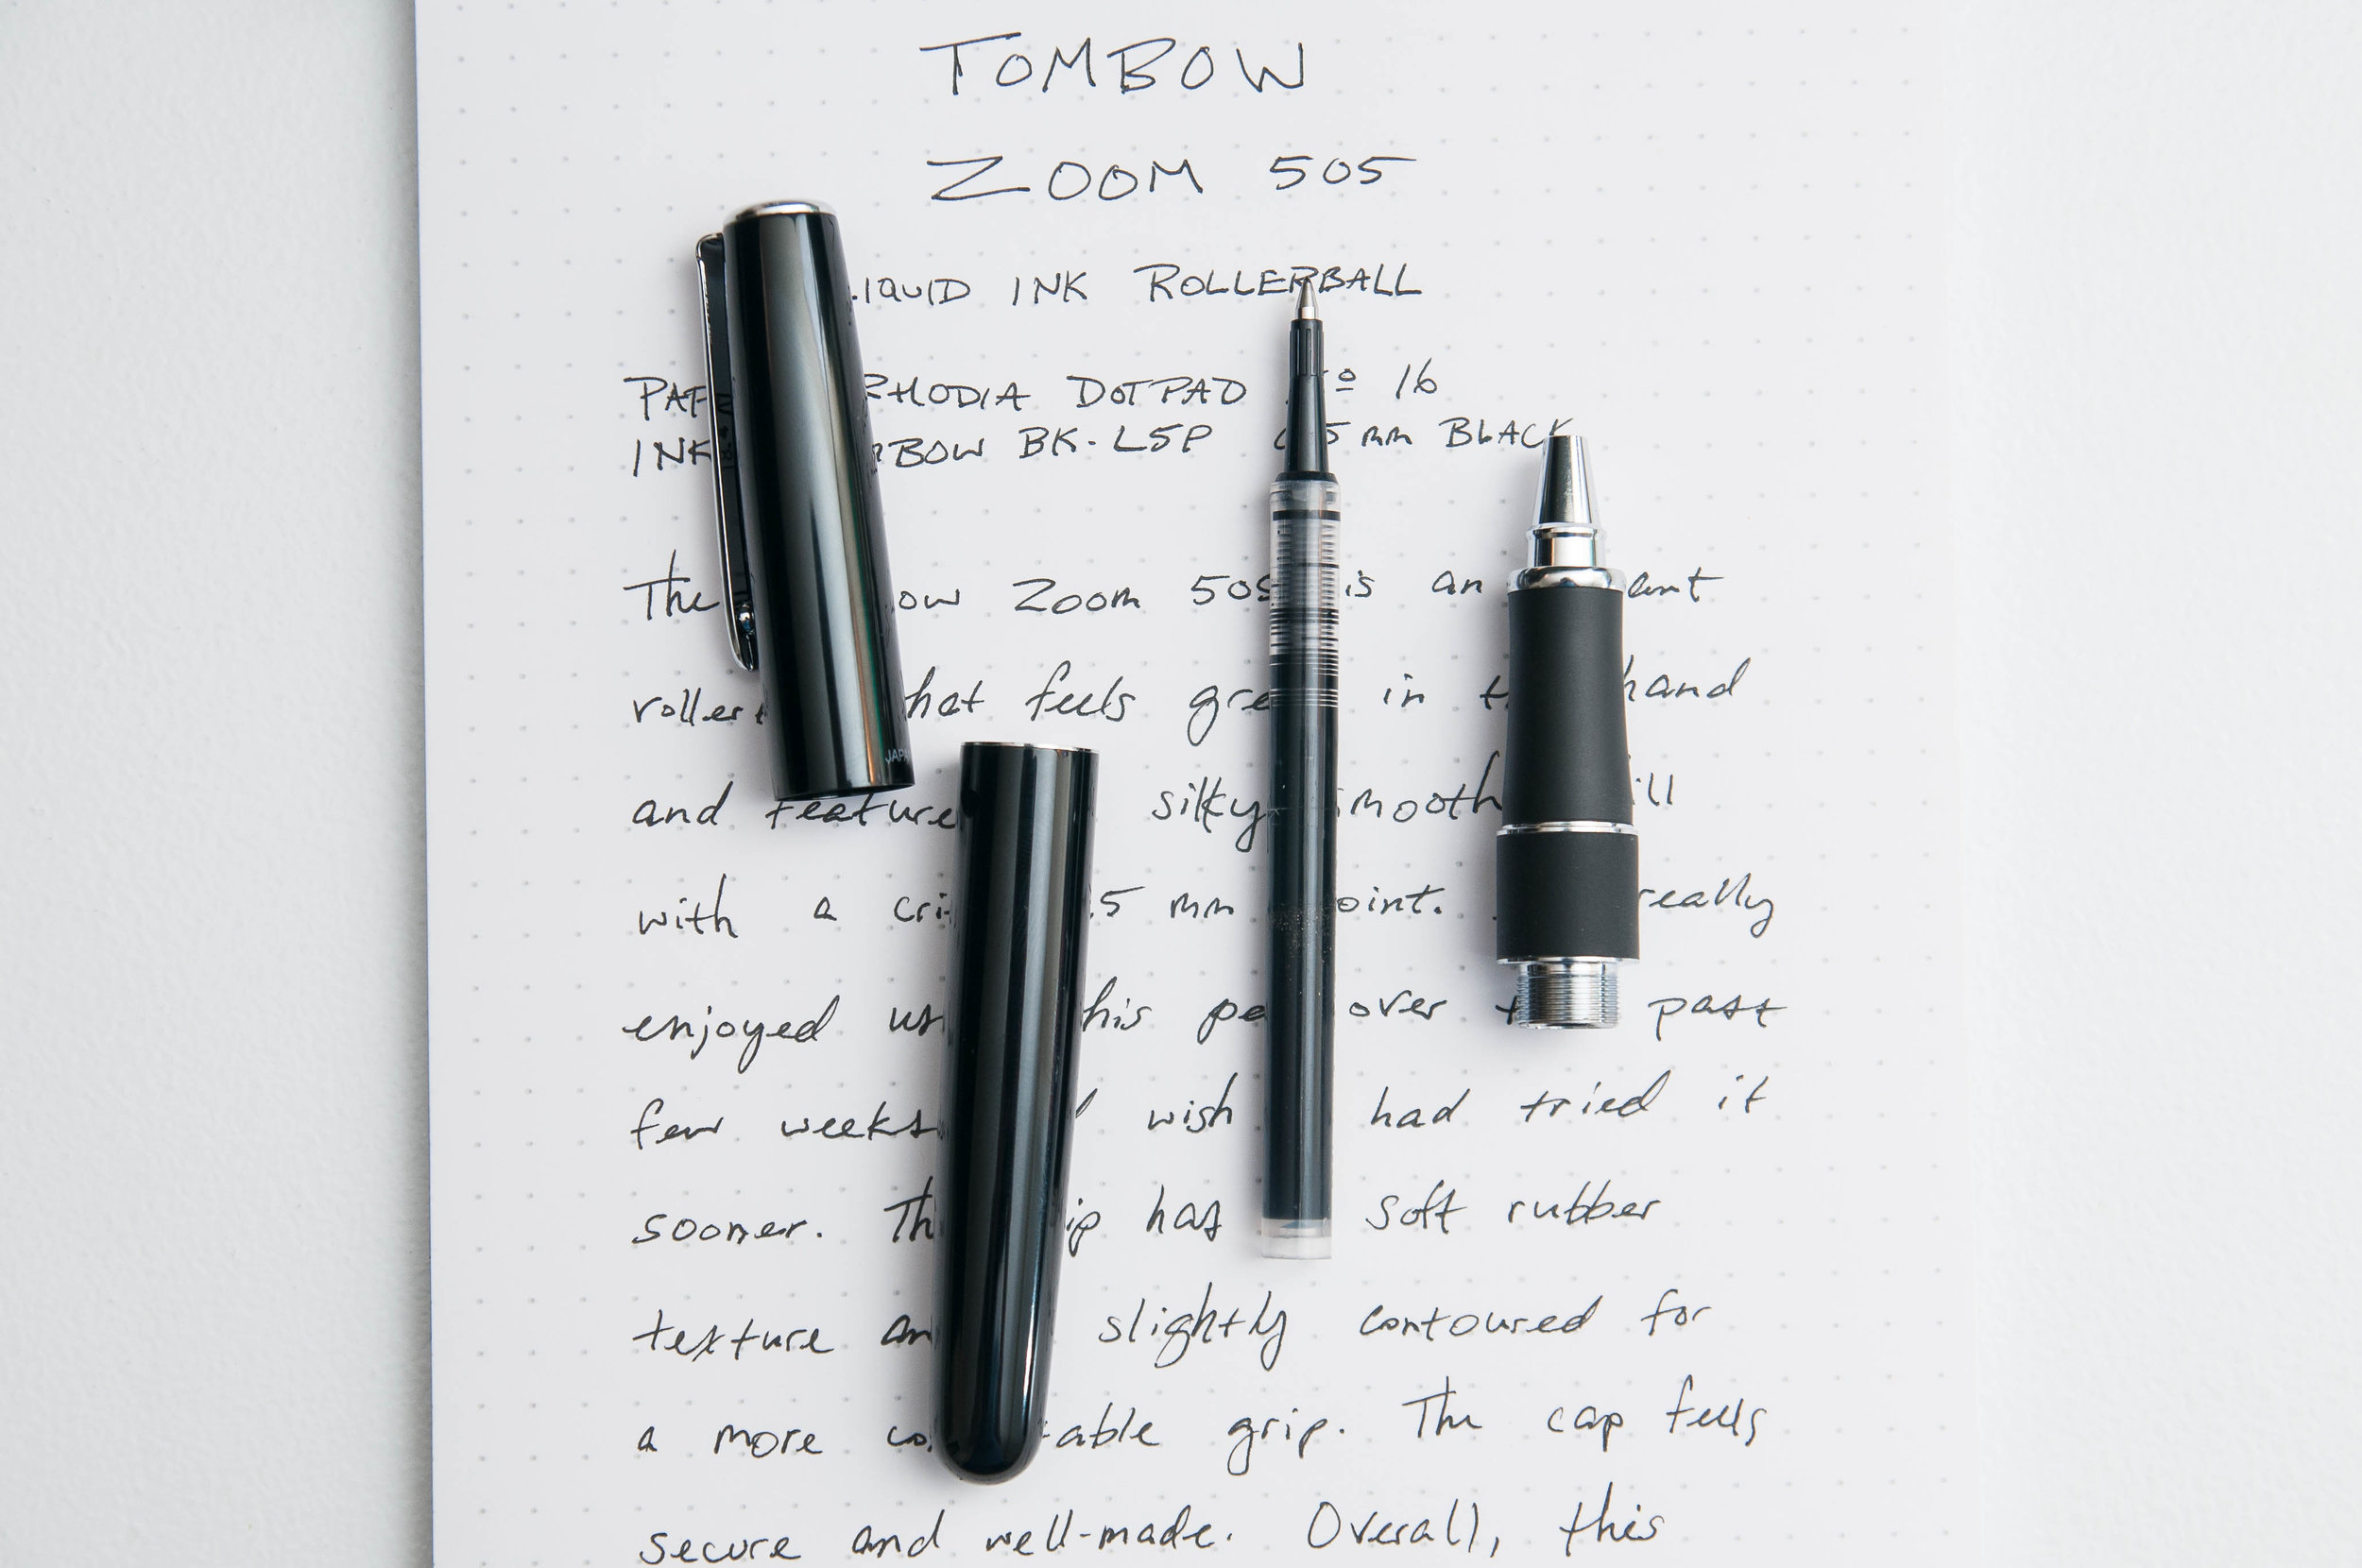 Tombow Zoom 505 Rollerball Pen Grip